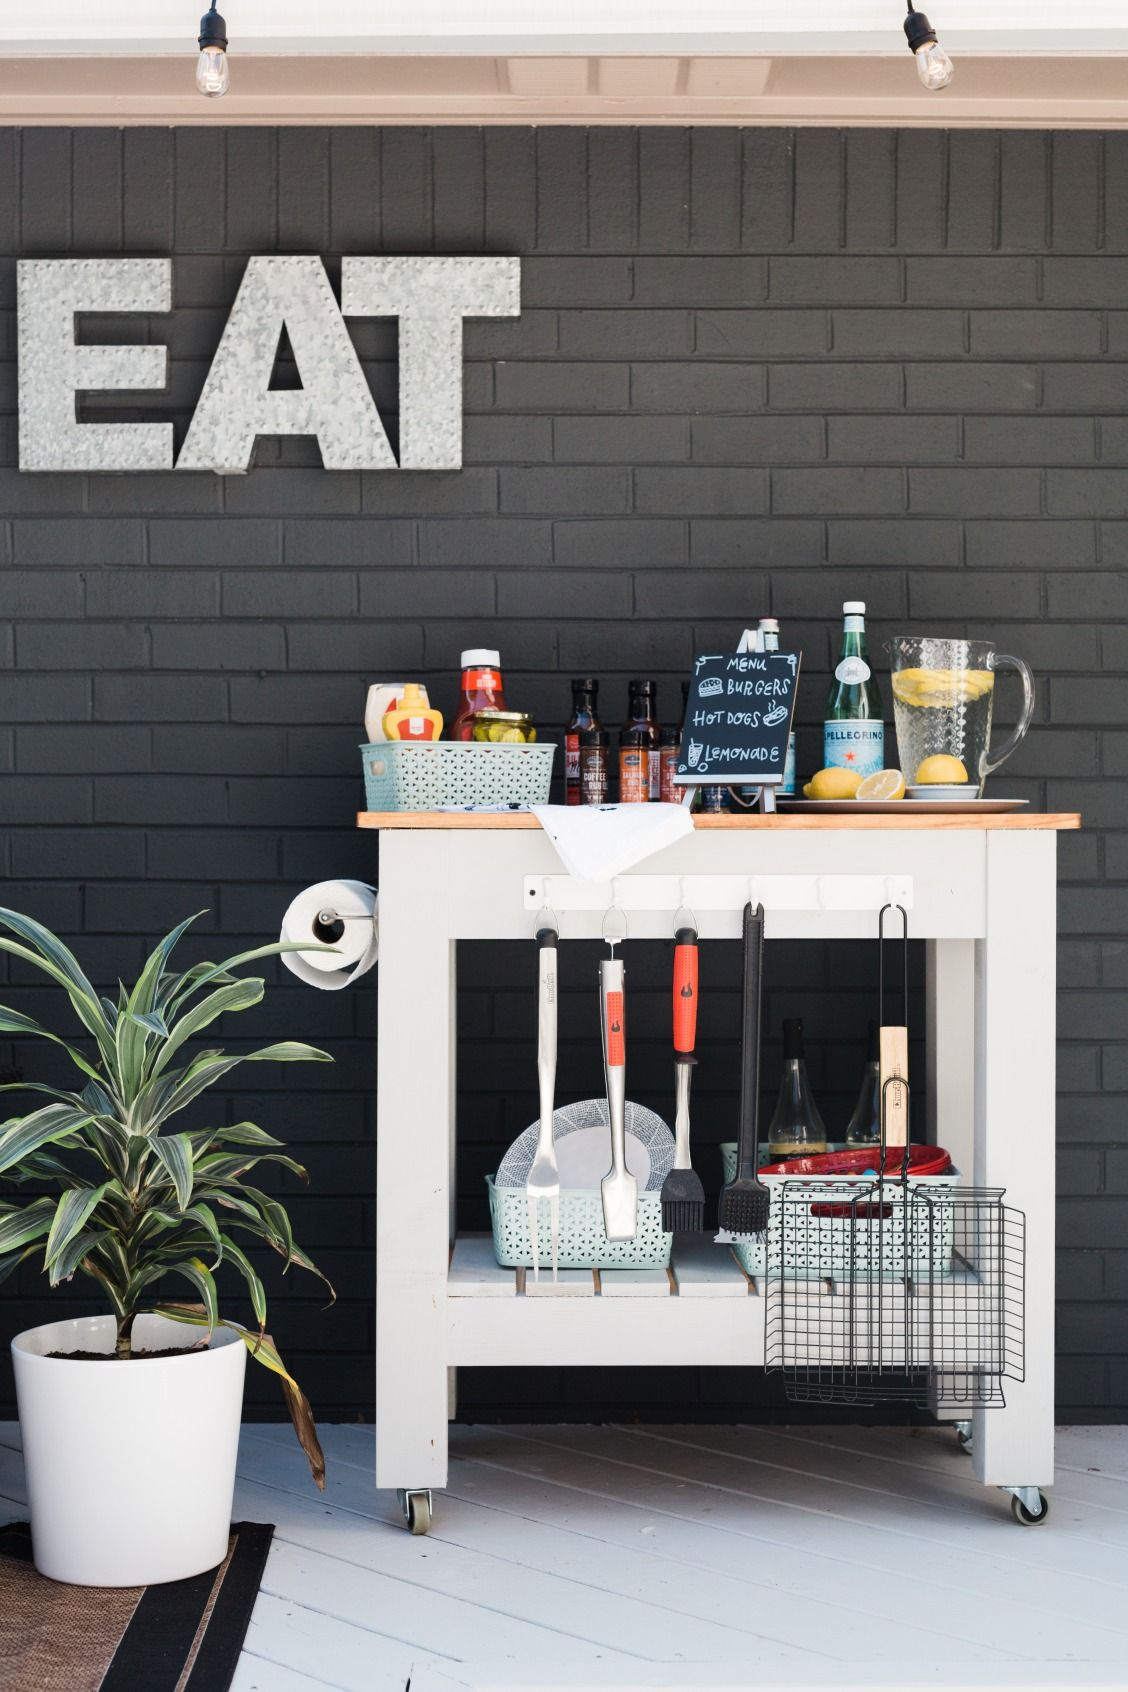 Diy a grill cart on wheels for ultimate outdoor entertaining adding